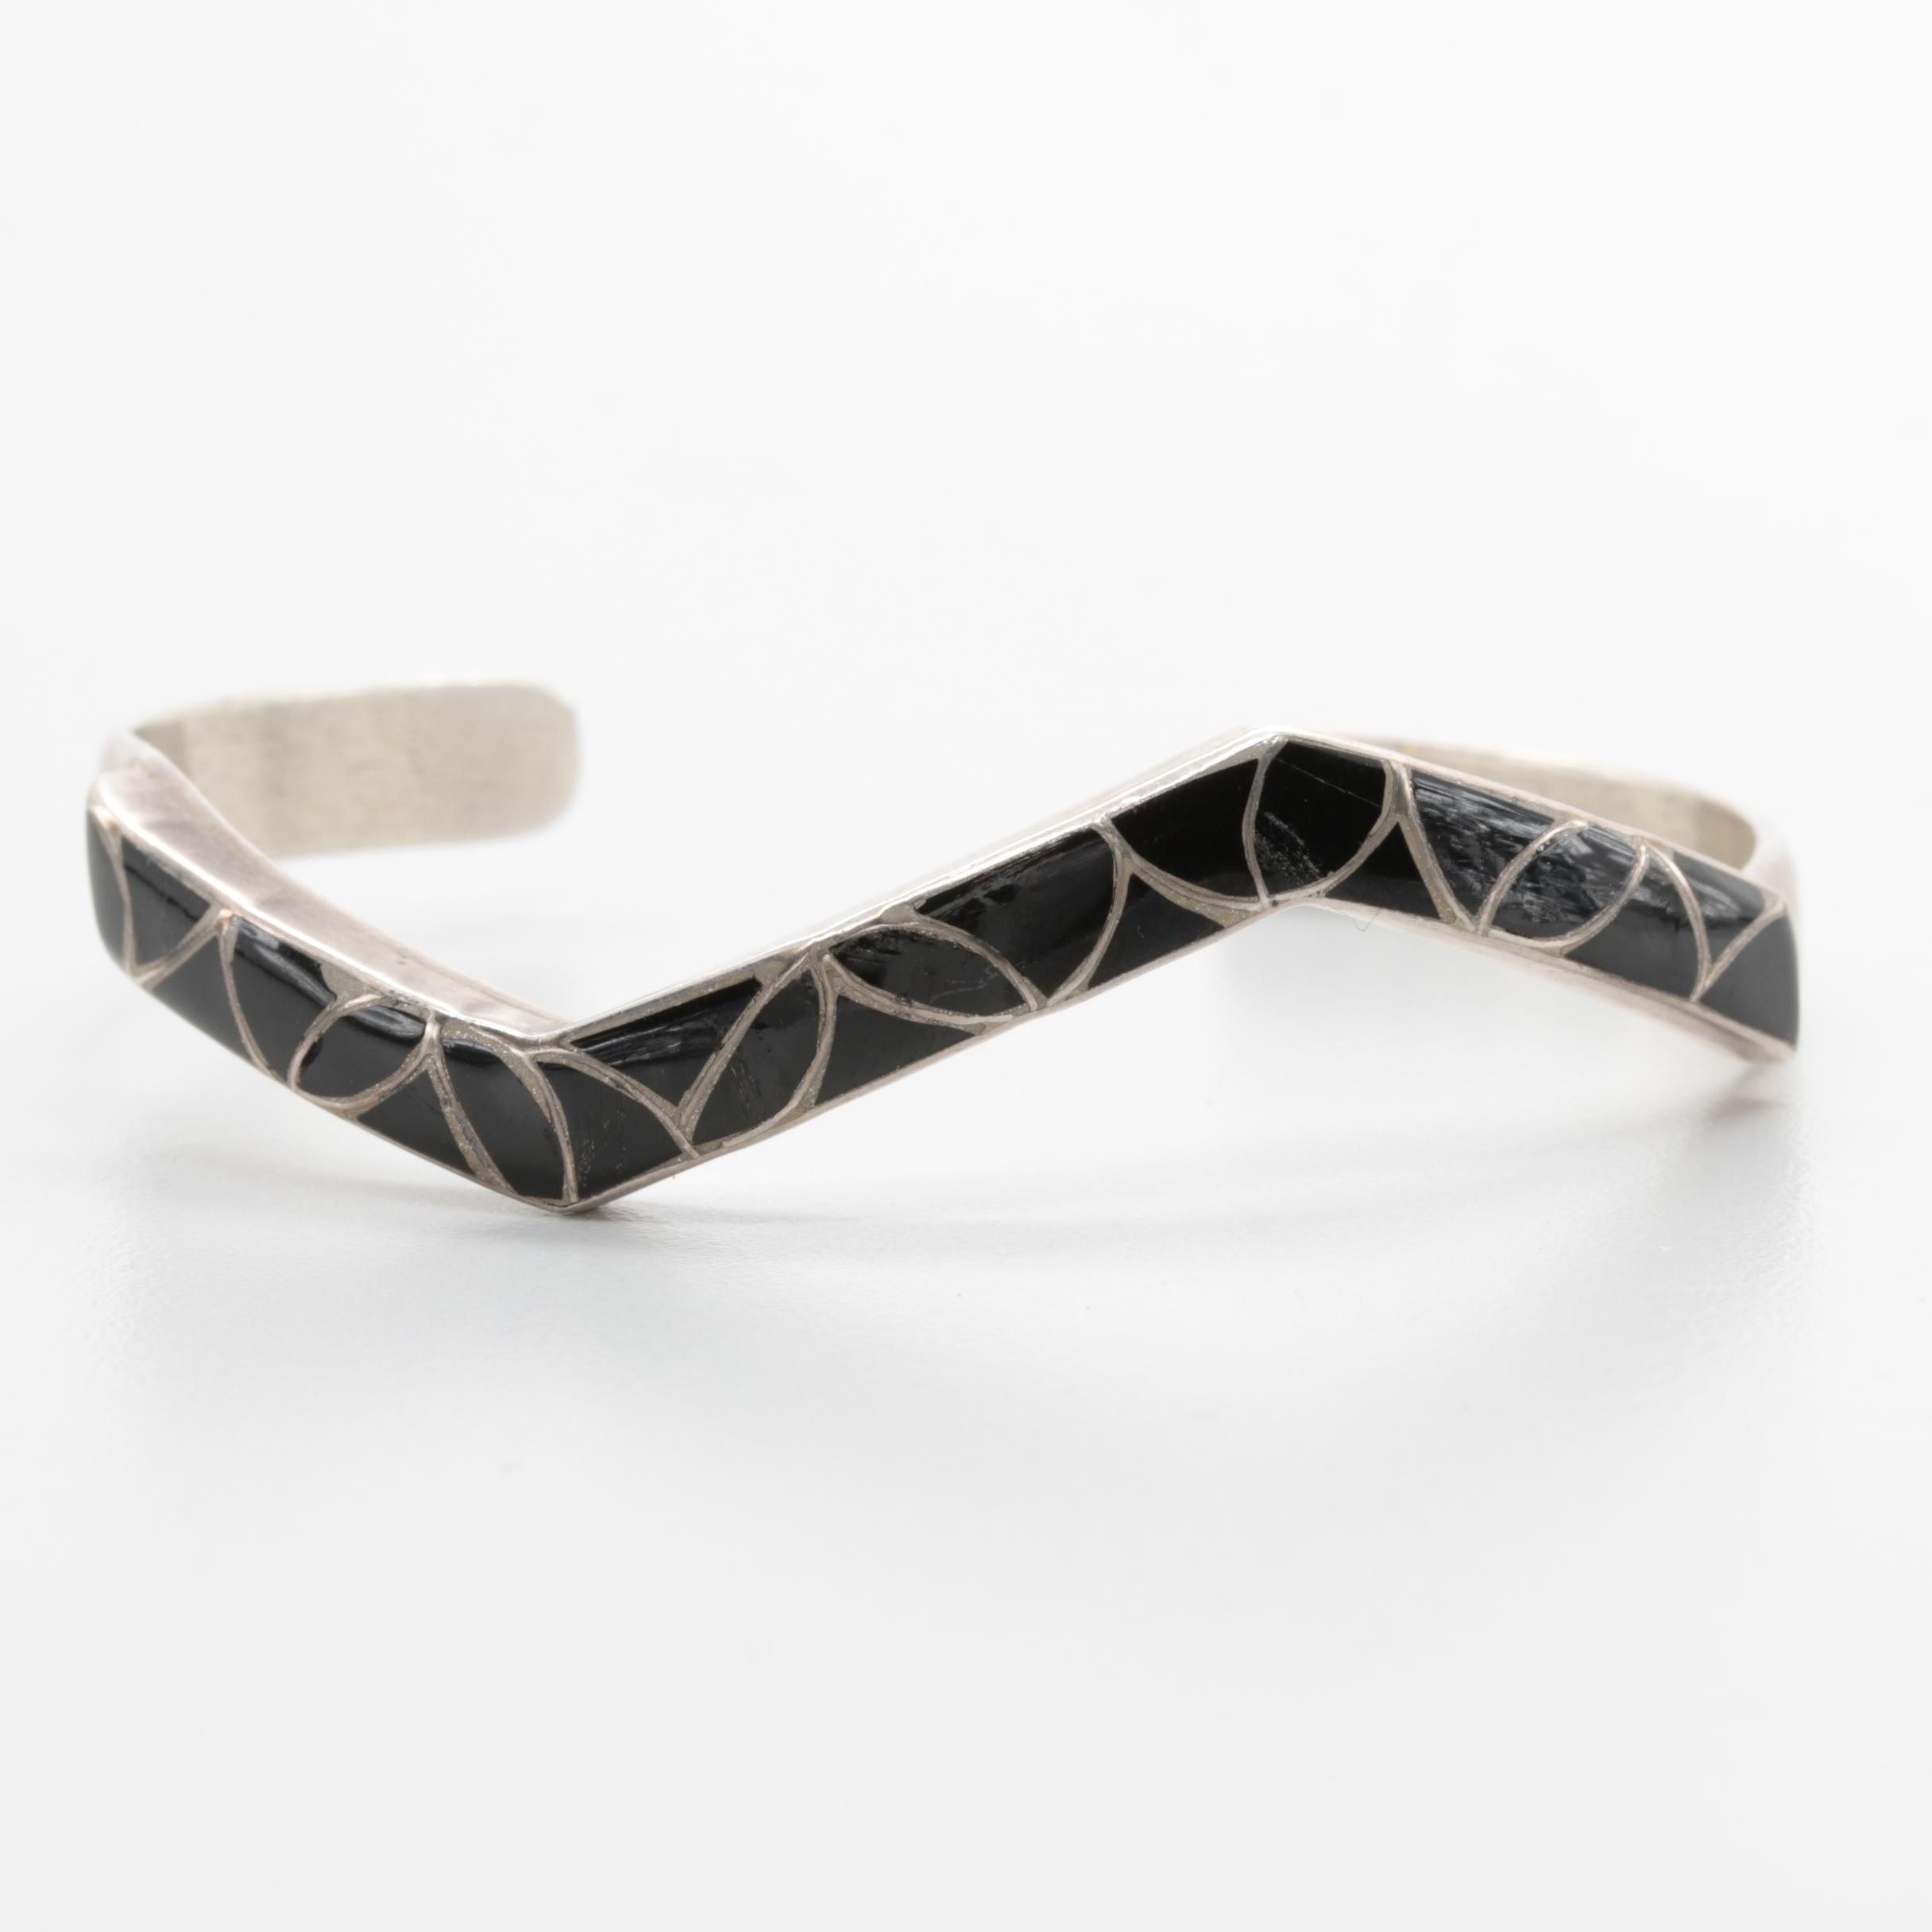 Sibert and Janita Kallestewa Zuni Sterling Silver Black Enamel Cuff Bracelet